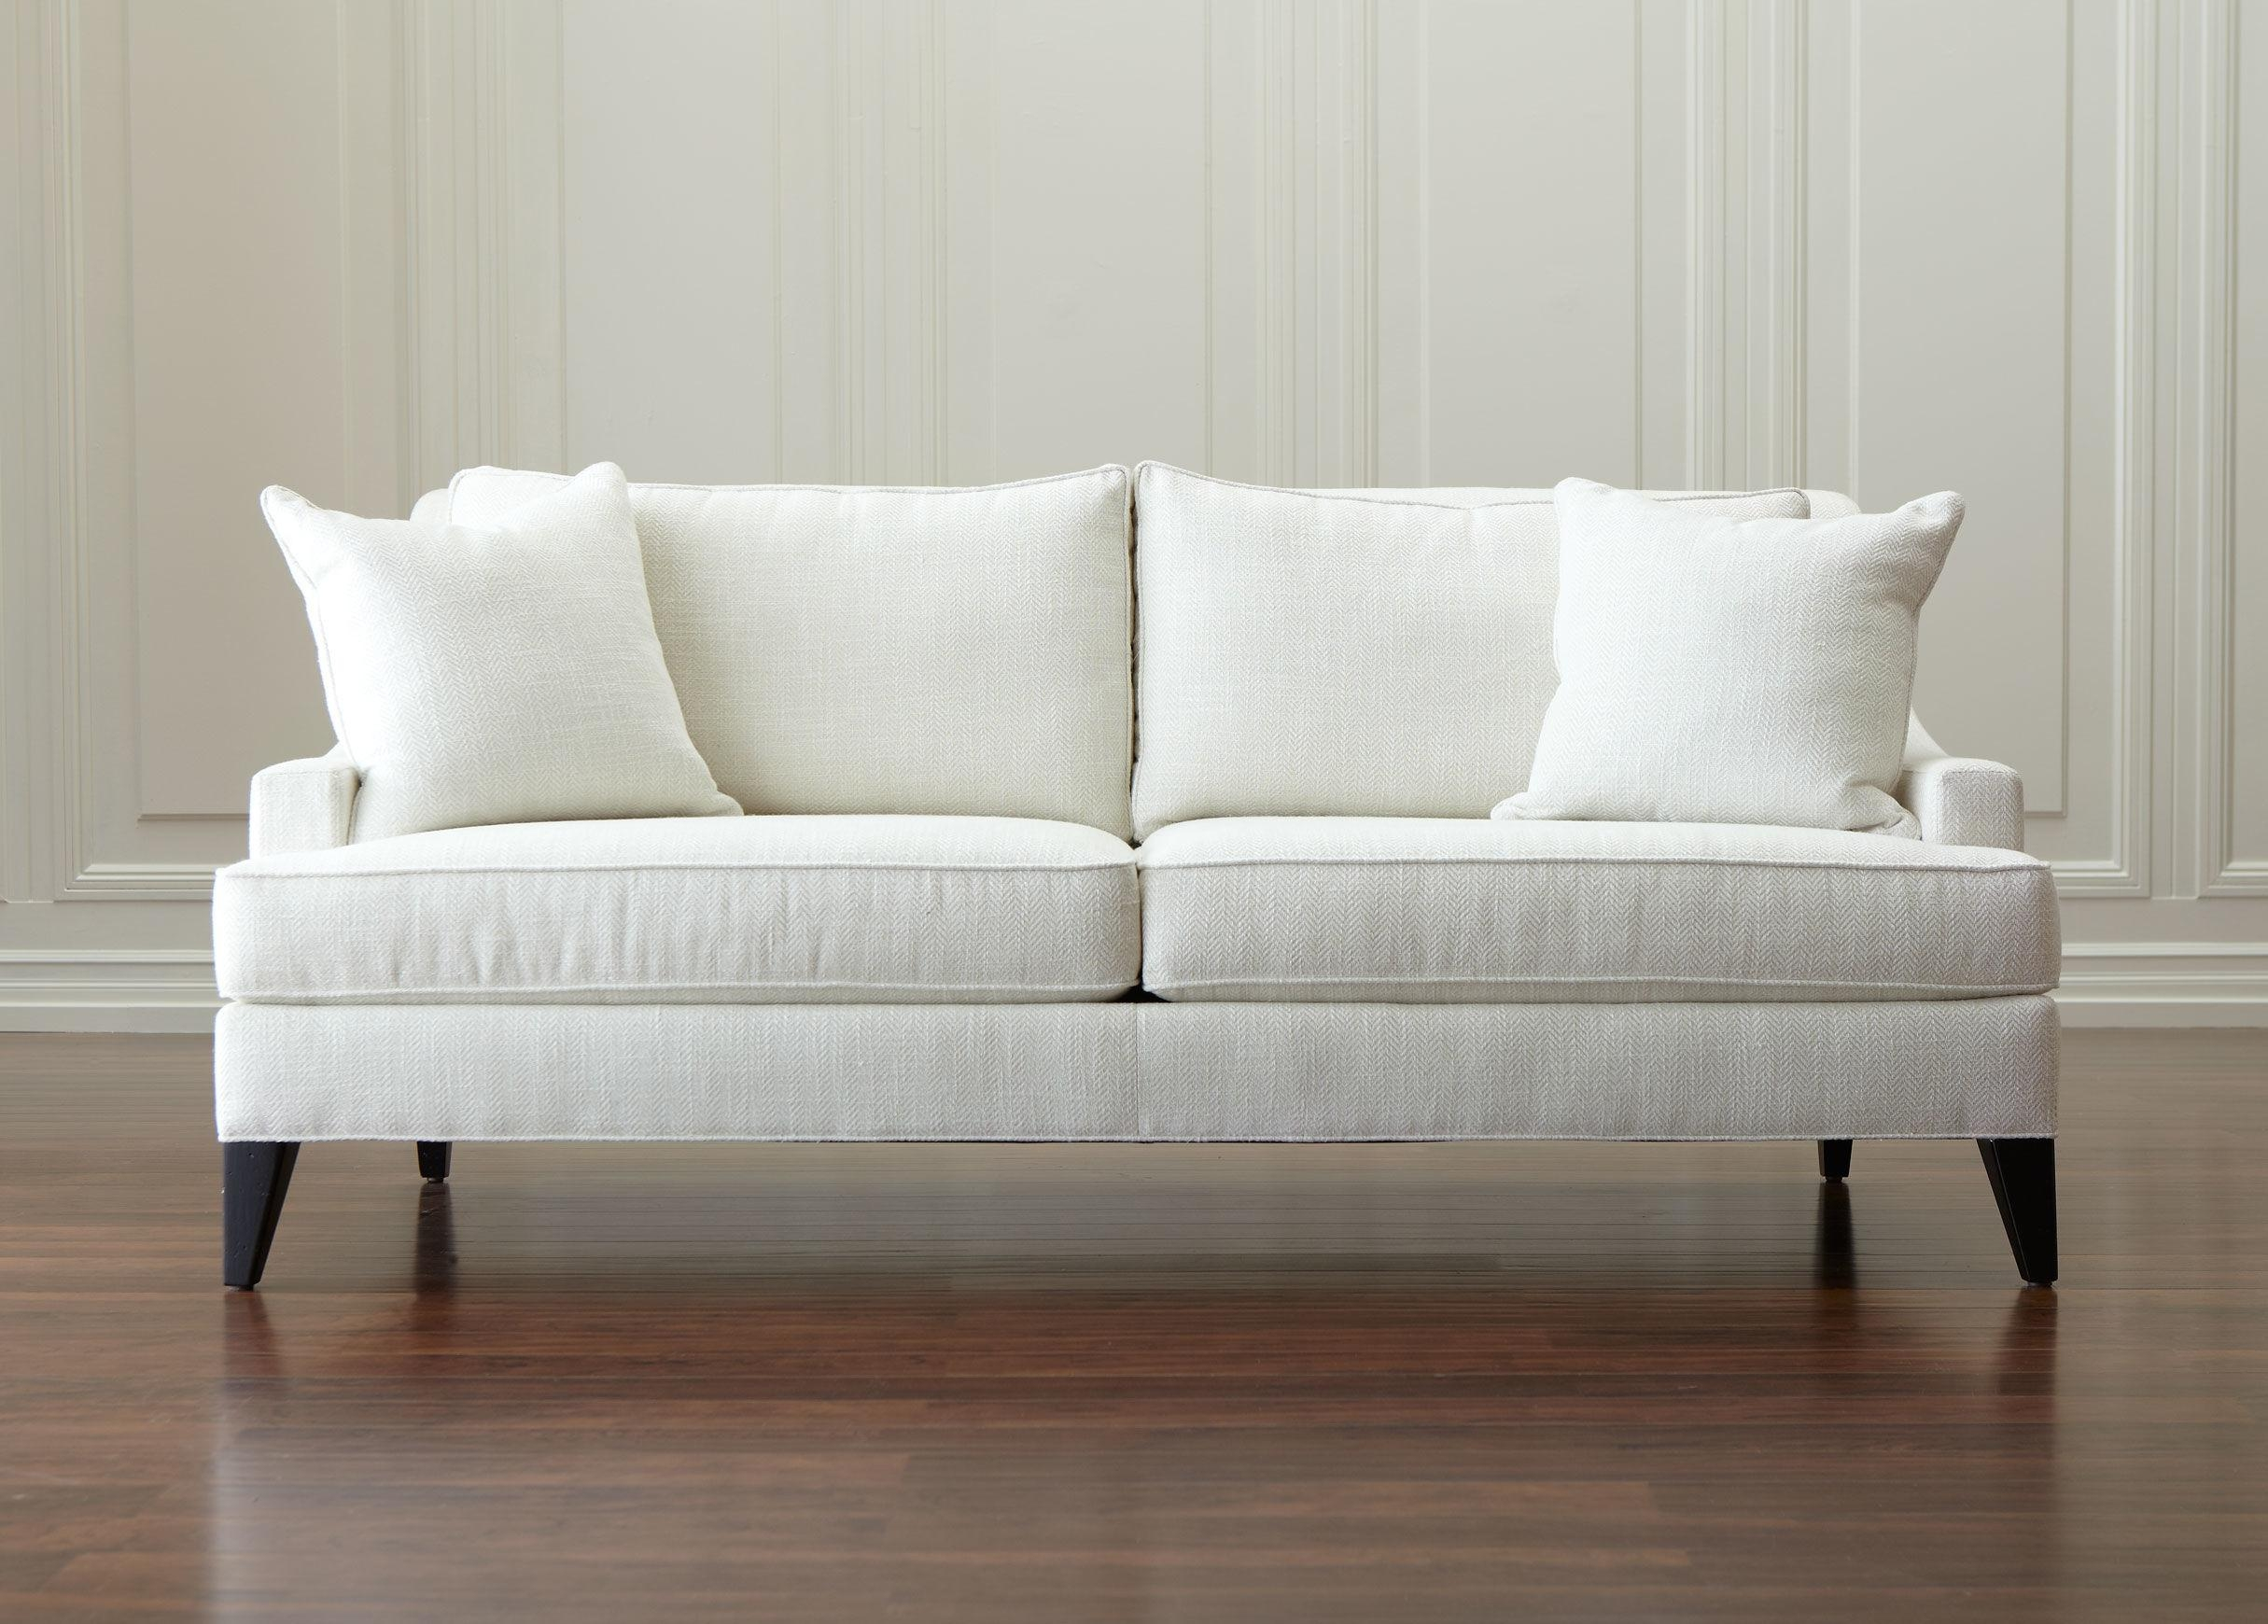 Best Ethan Allen Sleeper Sofas   Homesfeed Pertaining To Short Sofas (View 9 of 20)